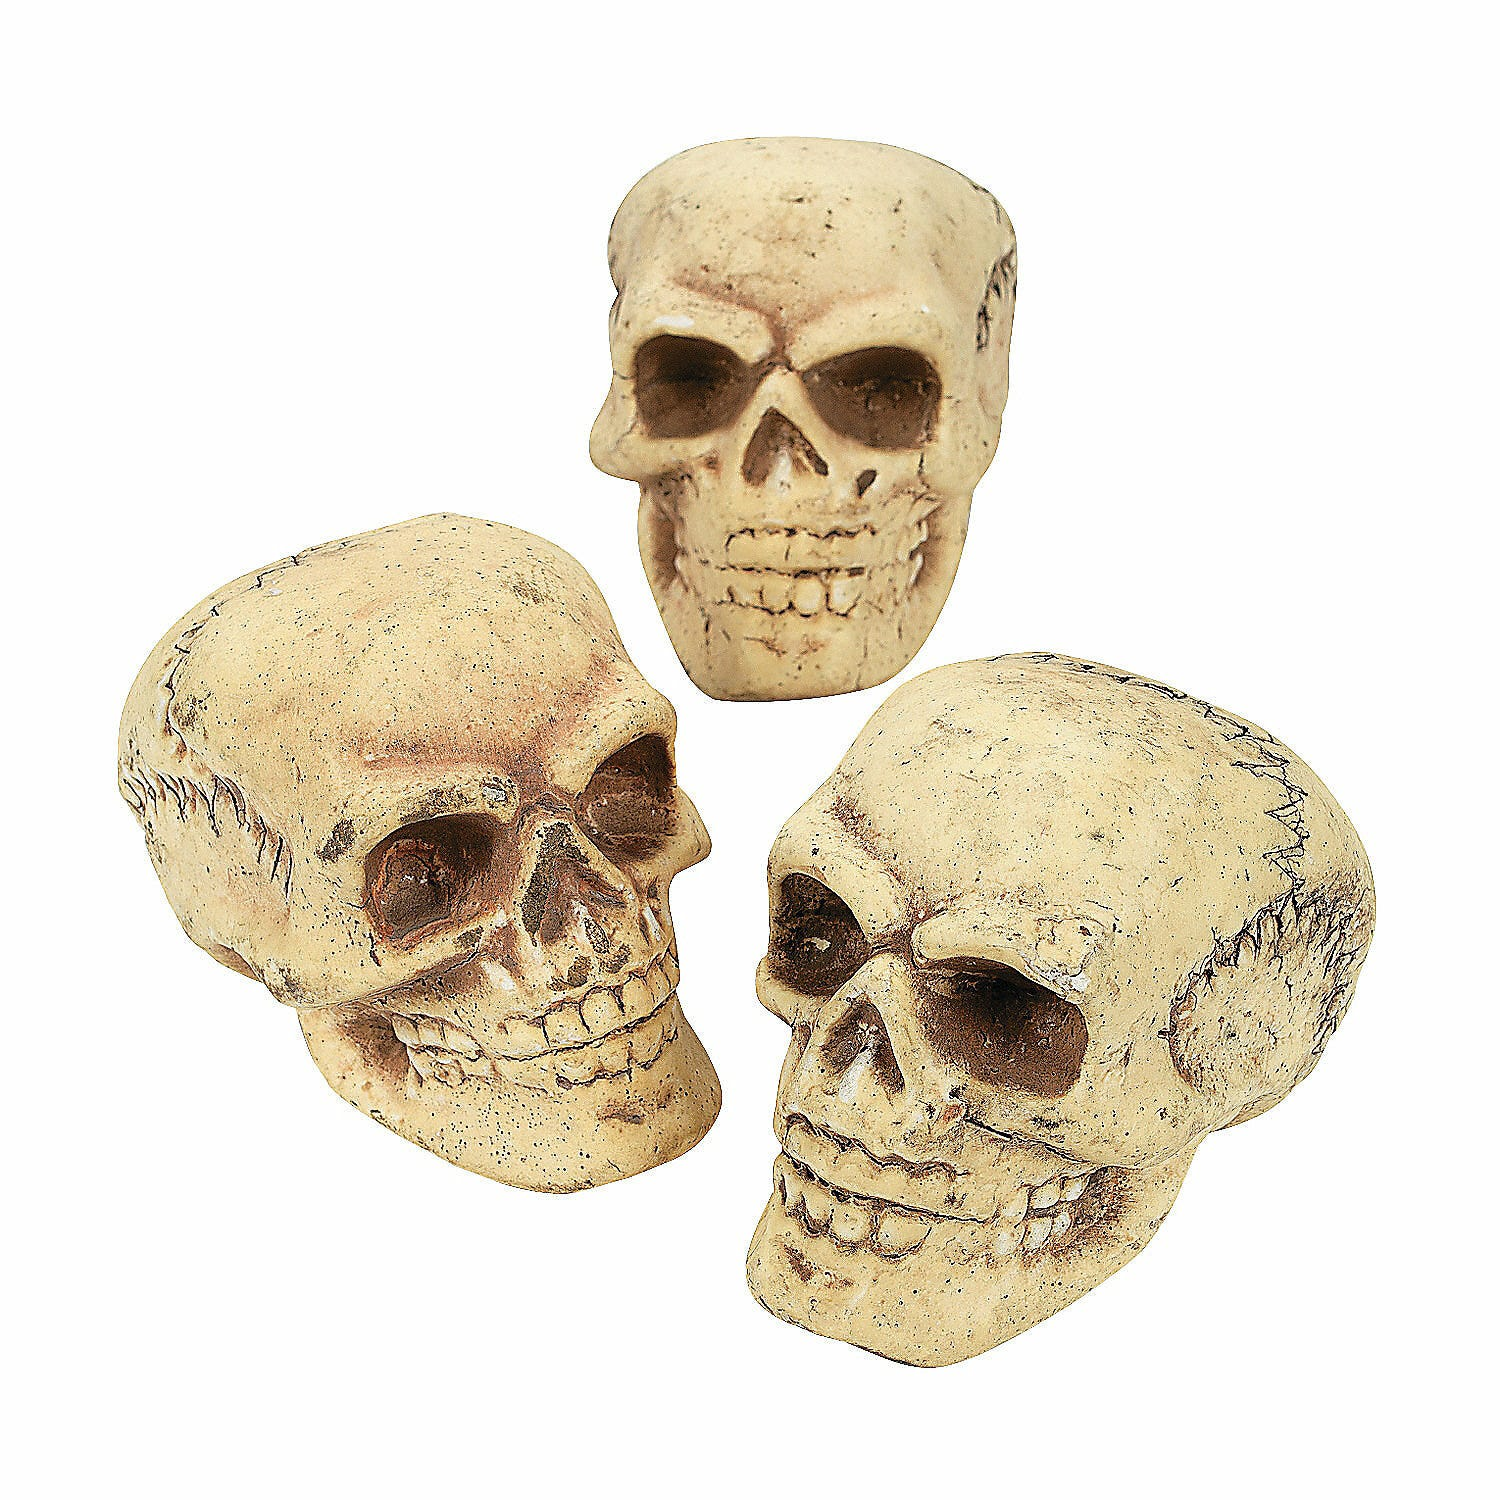 HALLOWEEN HORROR SPOOKY PARTY DECORATION PROP ONE (1